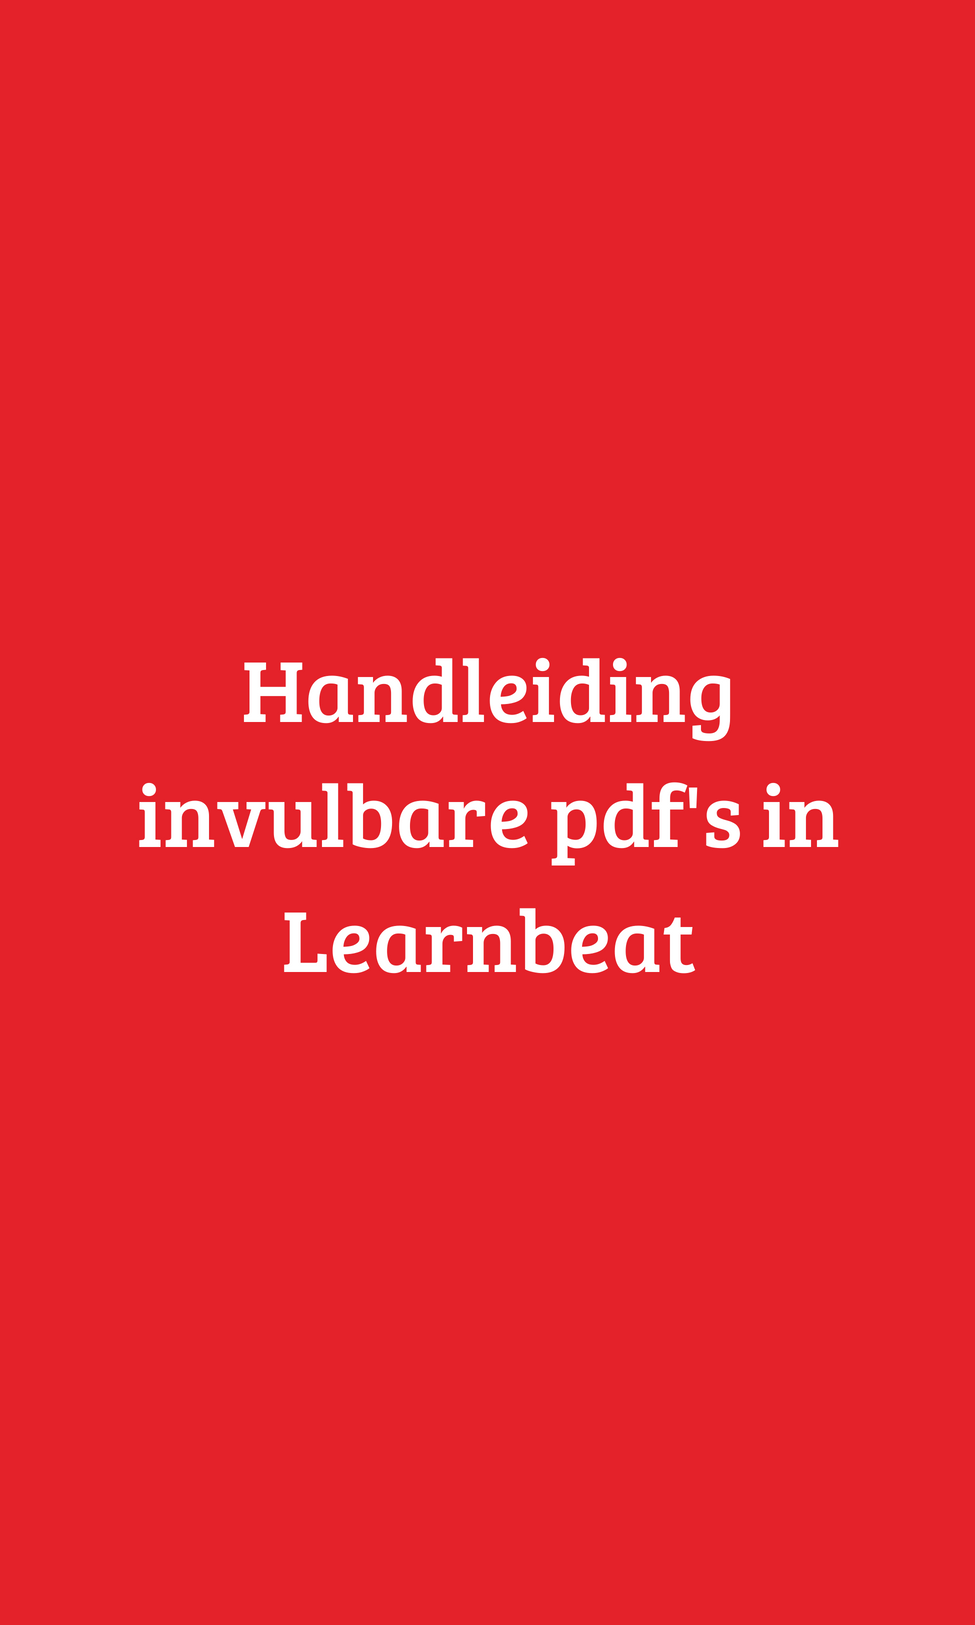 Handleiding invulbare pdfs in Learnbeat